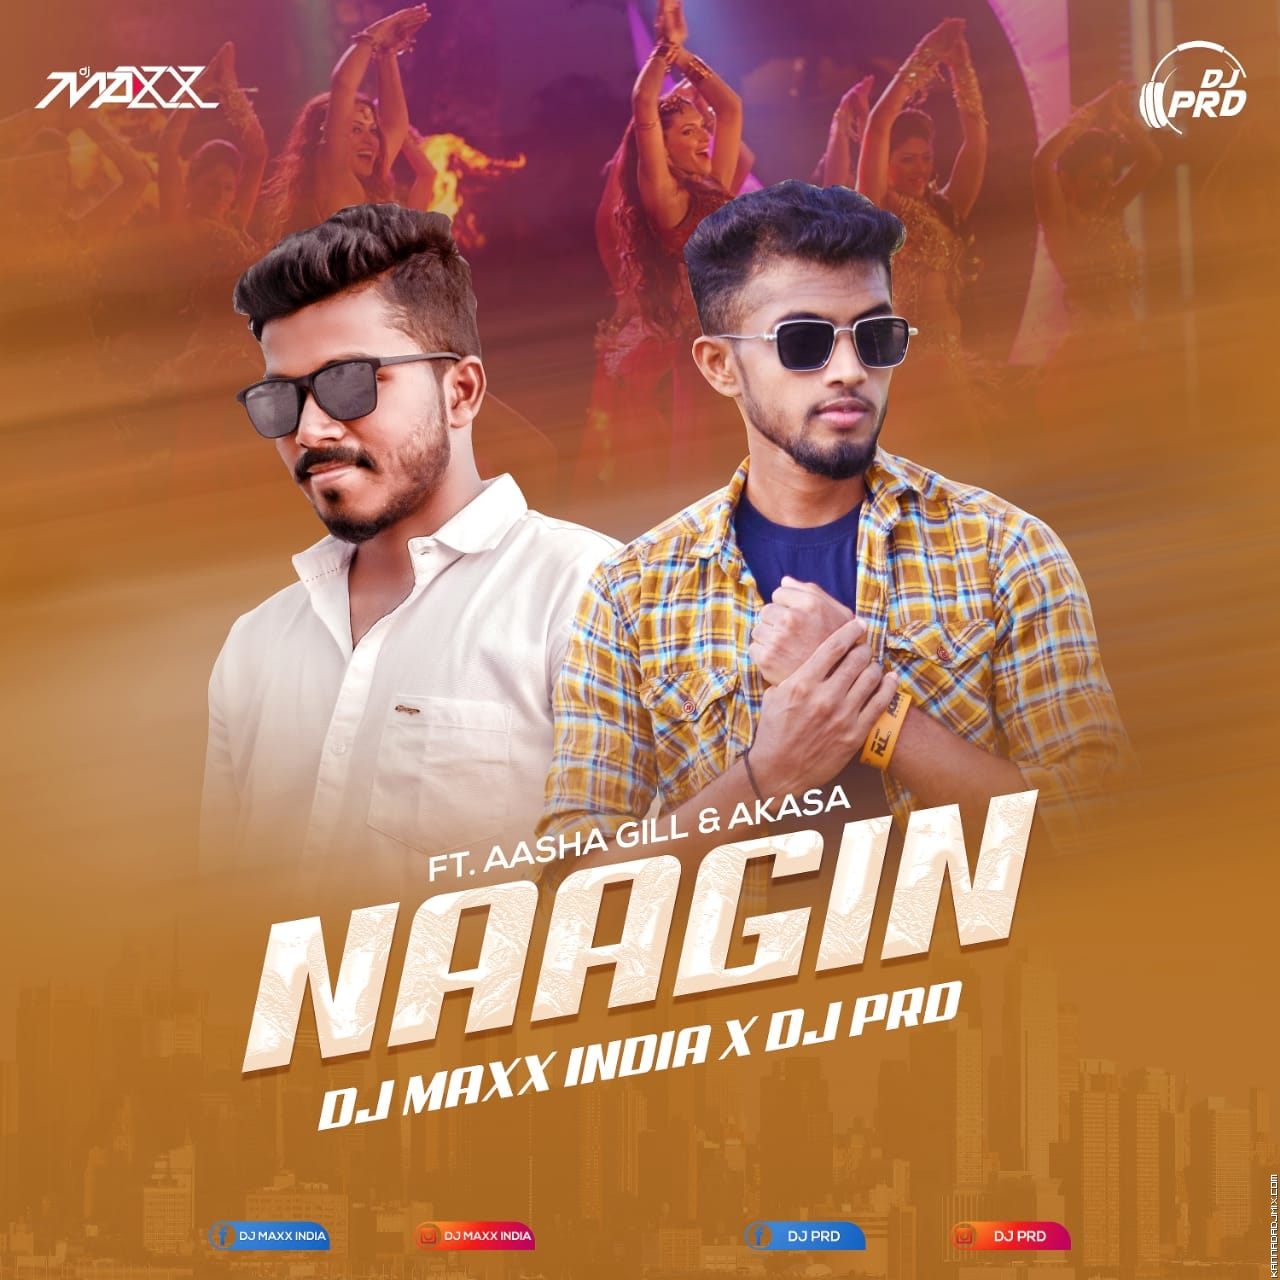 NAAGIN (REMIX) DJ MAXX INDIA X DJ PRD.mp3